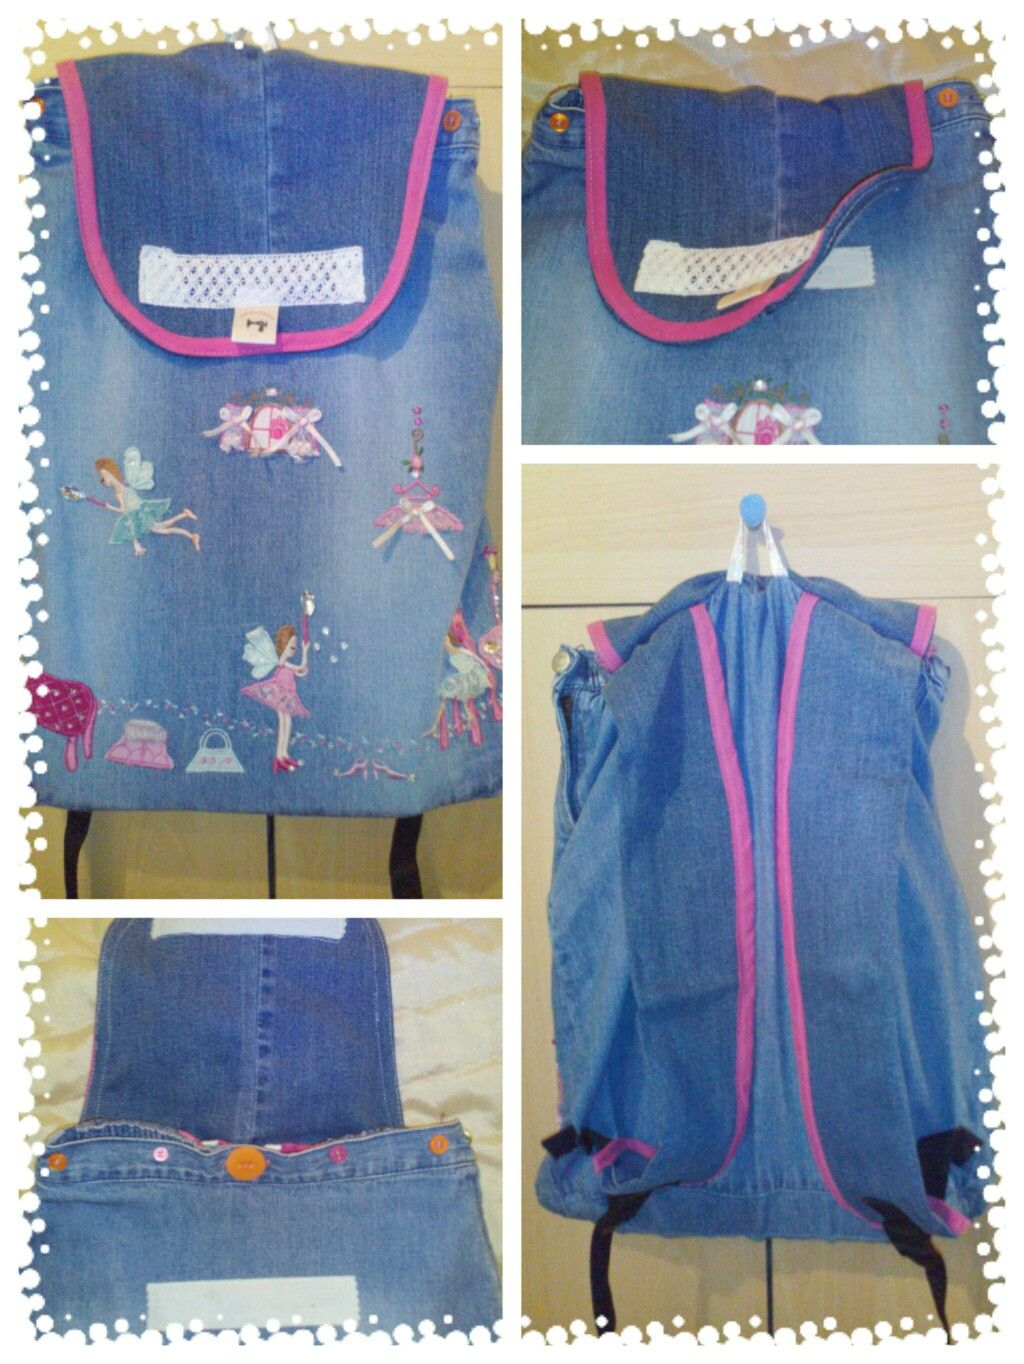 An embroidered jeans school backpack from an outgrown girl's skirt. It is fully lined with an internal pocket for all those little necessities that usually go astray in a school bag